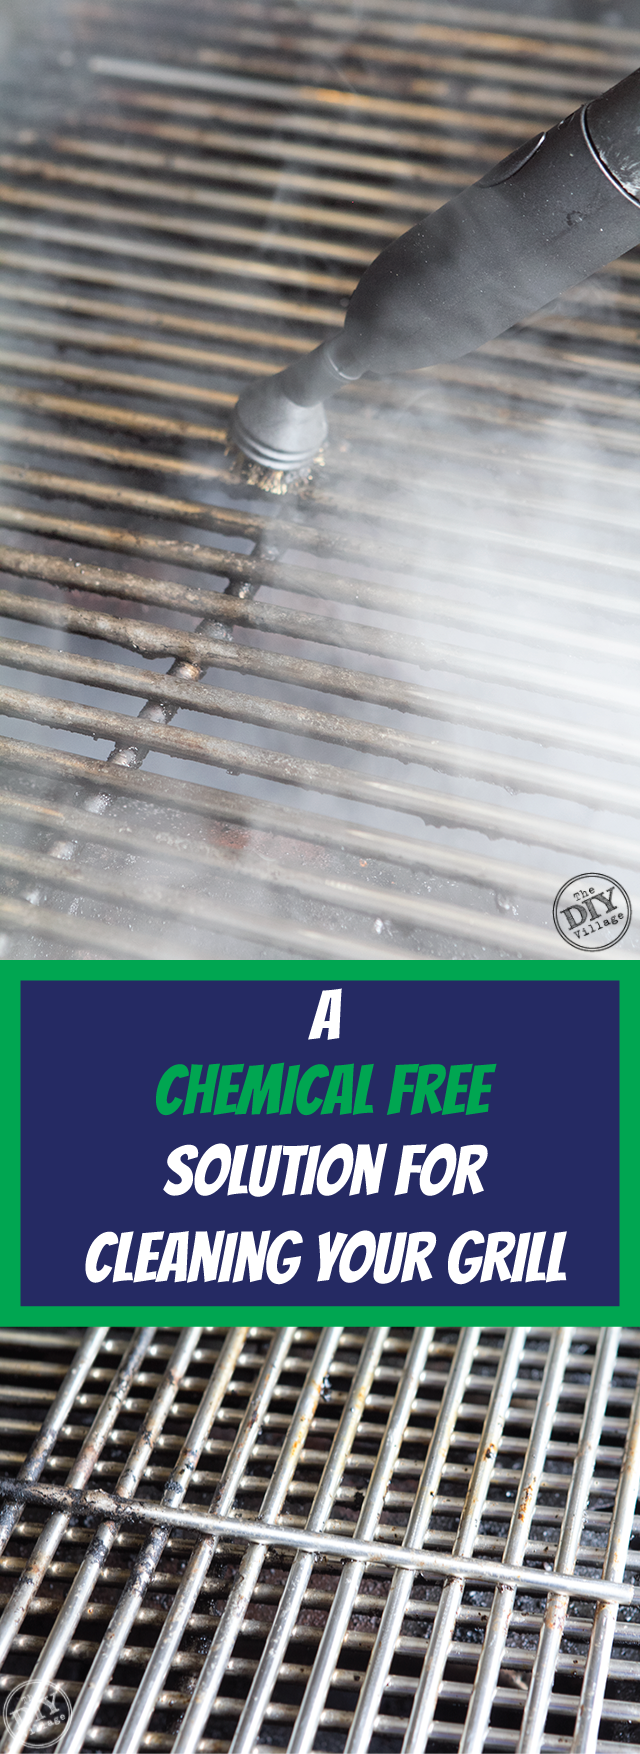 A-Chemical-Free-Solution-For-Cleaning-Your-Grill